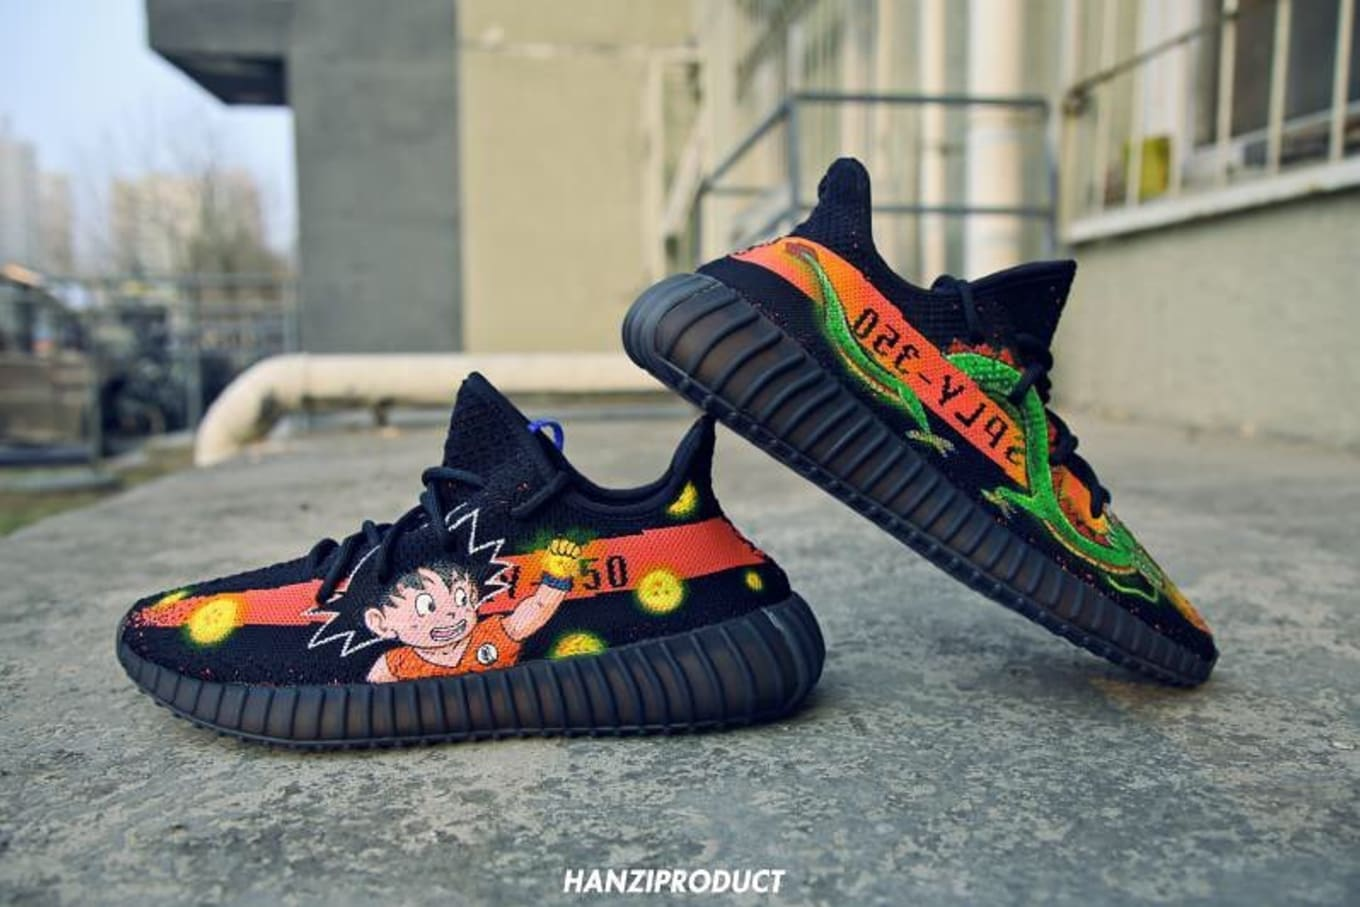 4c52532ad95d7 The Best Adidas Yeezy 350 Boost V2 Customs